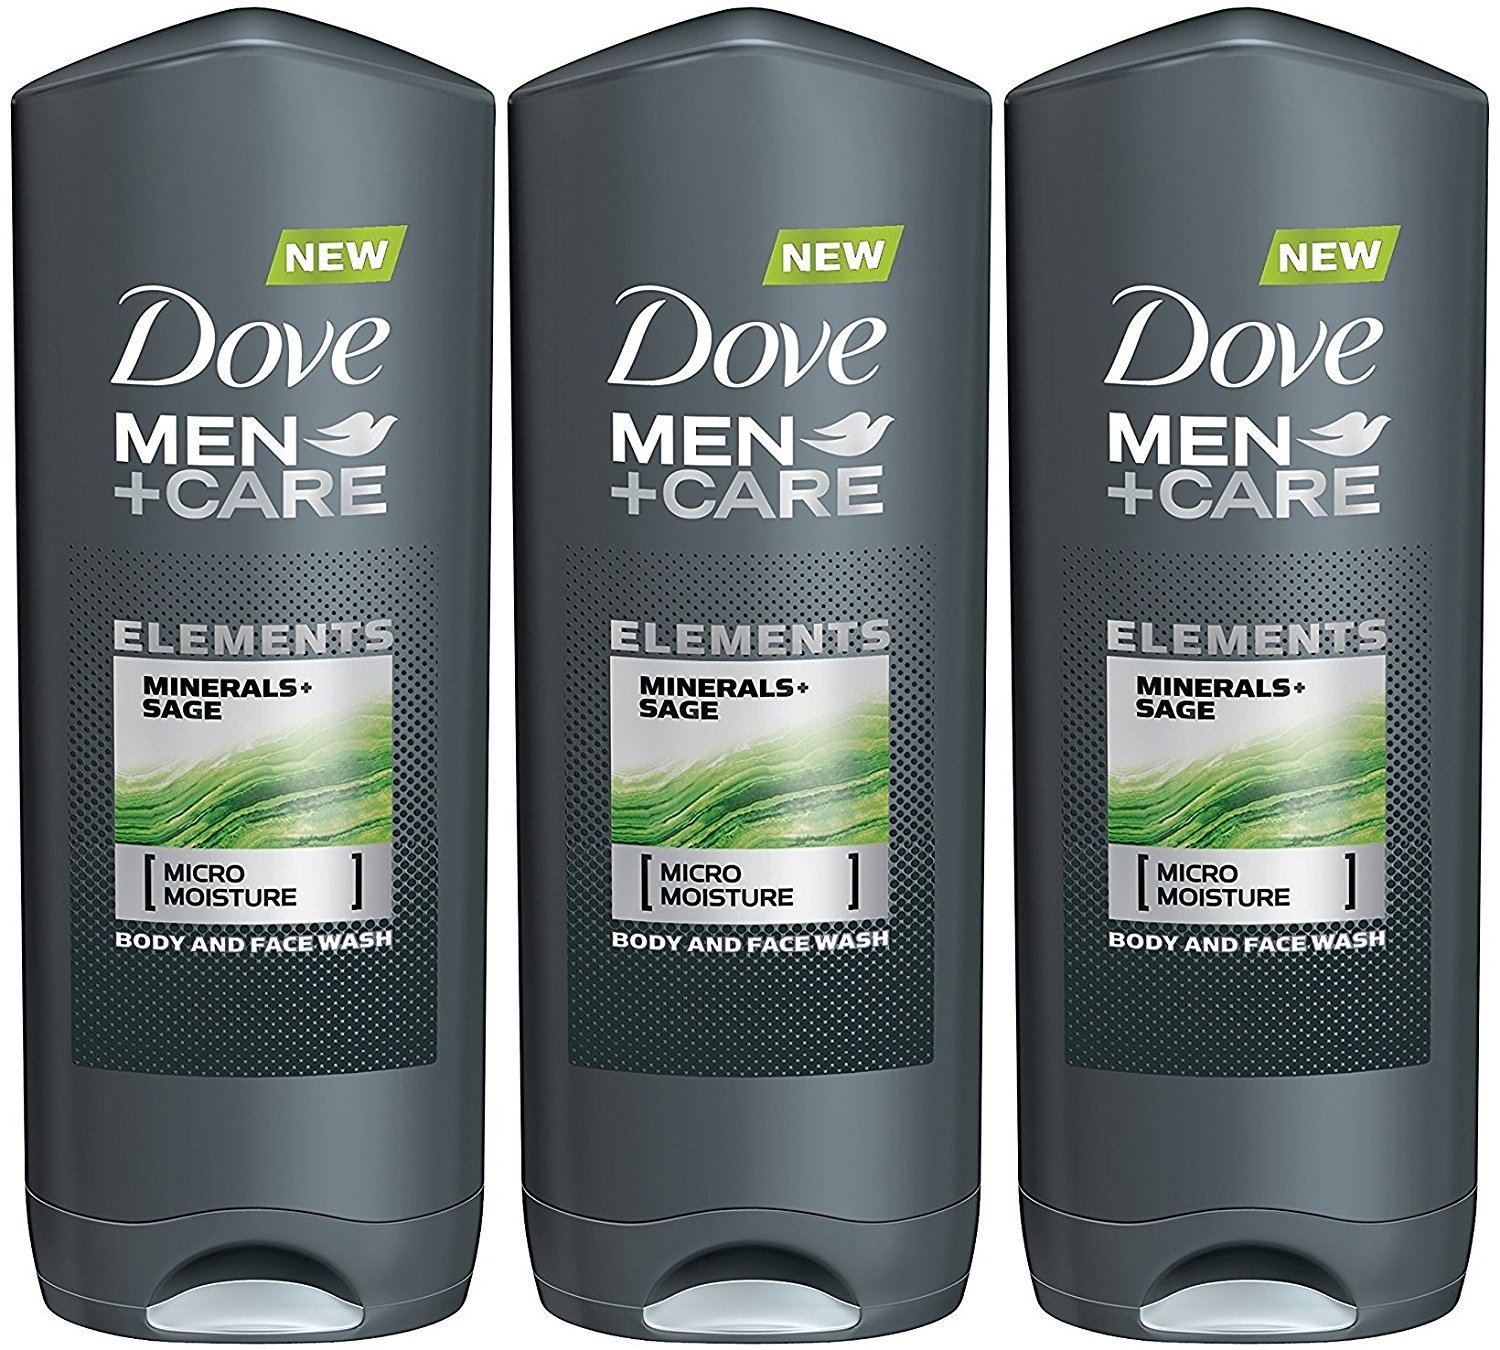 Dove Men Care Elements Body Wash Minerals And Sage 13 5 Ounce Pack Of 3 Buy Online In Bulgaria Dove Products In Bulgaria See Prices Reviews And Free Delivery Over 120 Lv Desertcart